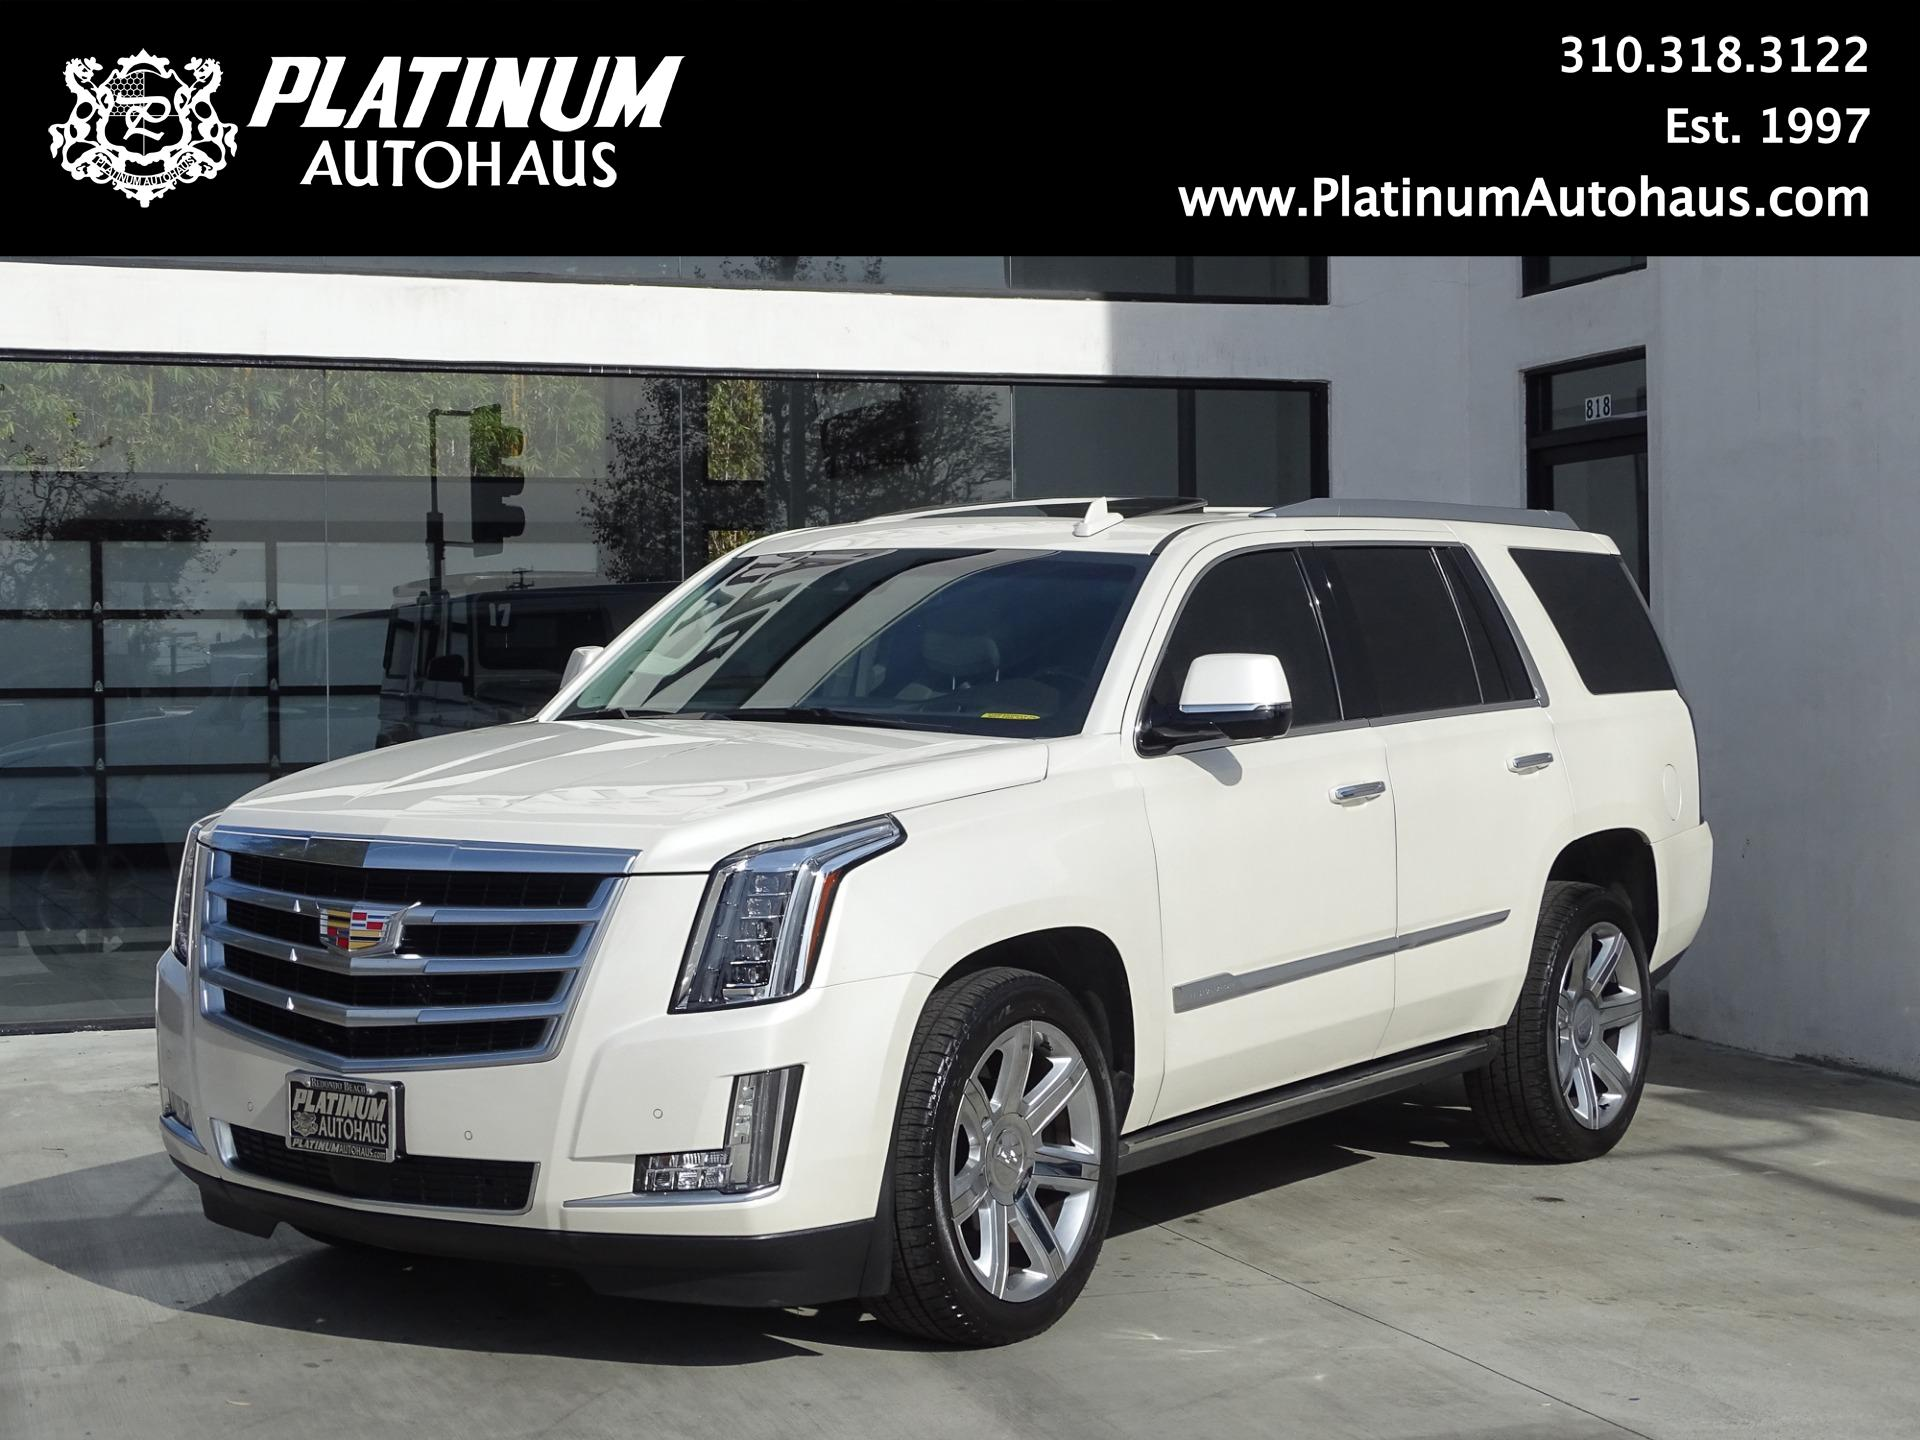 2015 cadillac escalade premium stock 6115 for sale near redondo beach ca ca cadillac dealer. Black Bedroom Furniture Sets. Home Design Ideas